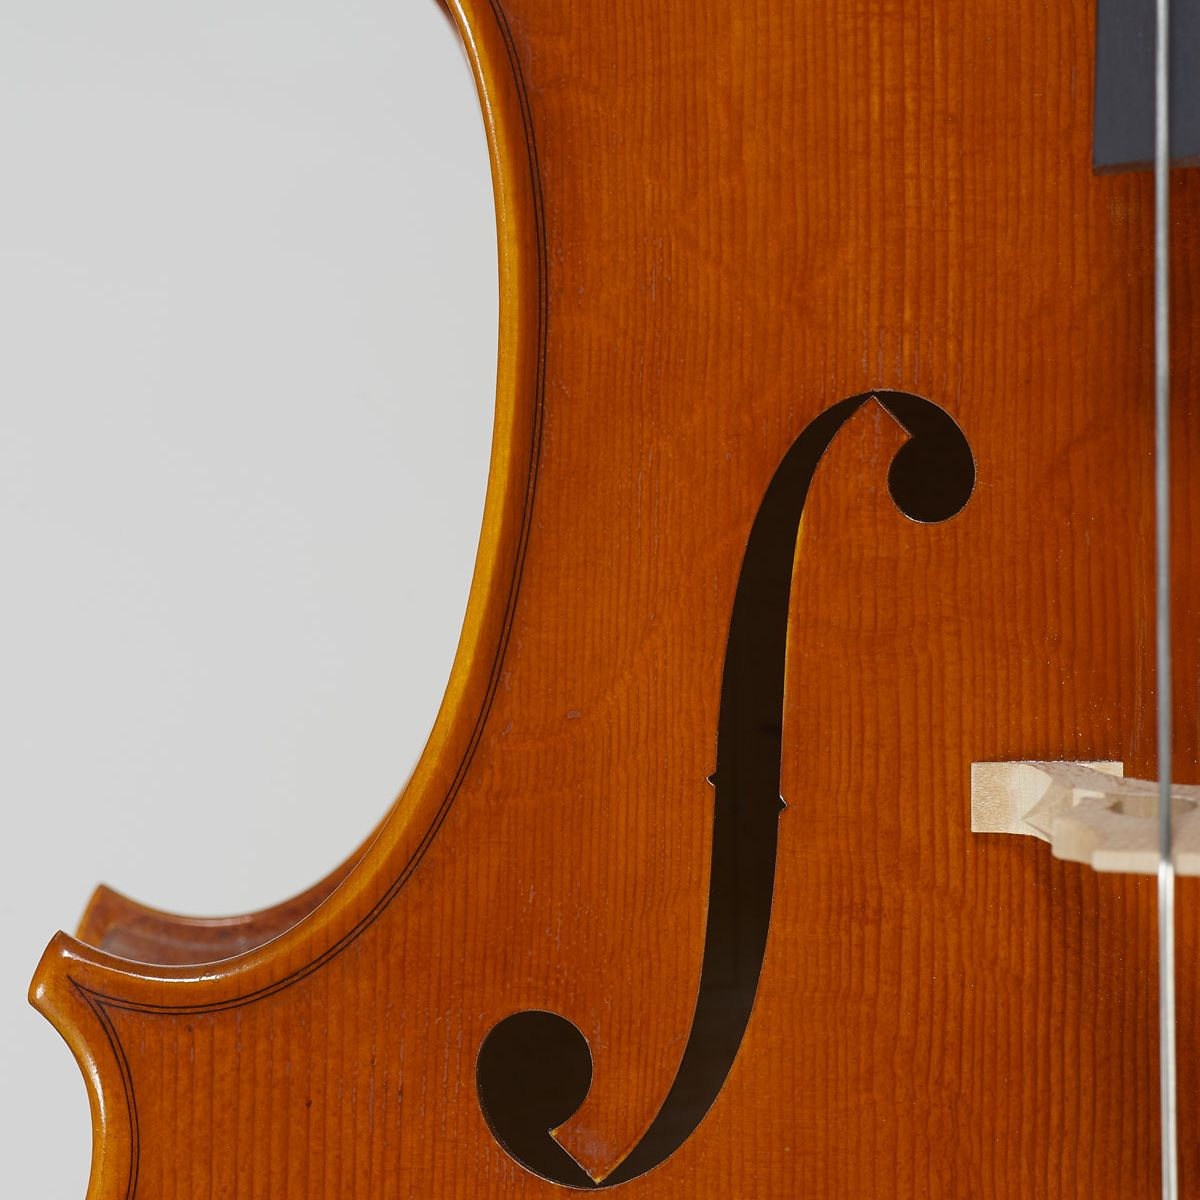 cello-detail